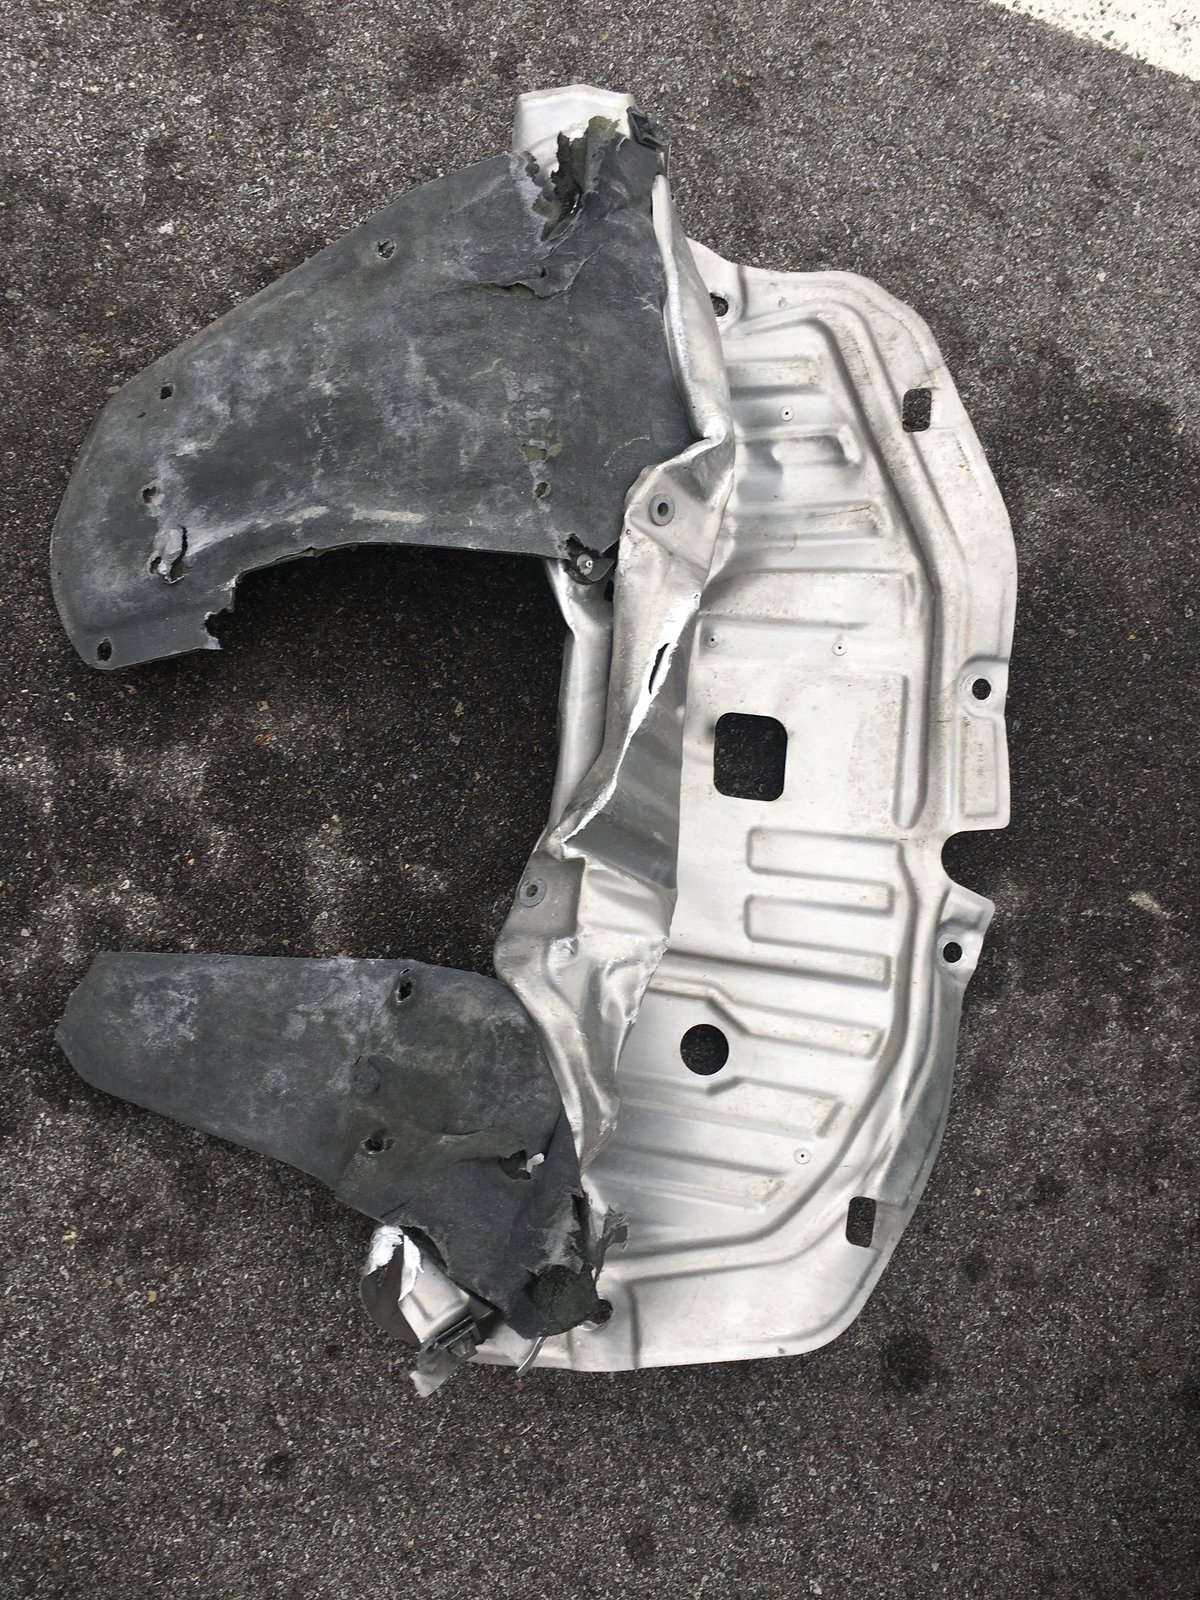 2012 Honda Civic Undercarriage Shield : honda, civic, undercarriage, shield, Plate, Crumpled, 2016+, Honda, Civic, Forum, (10th, Forum,, CivicX.com